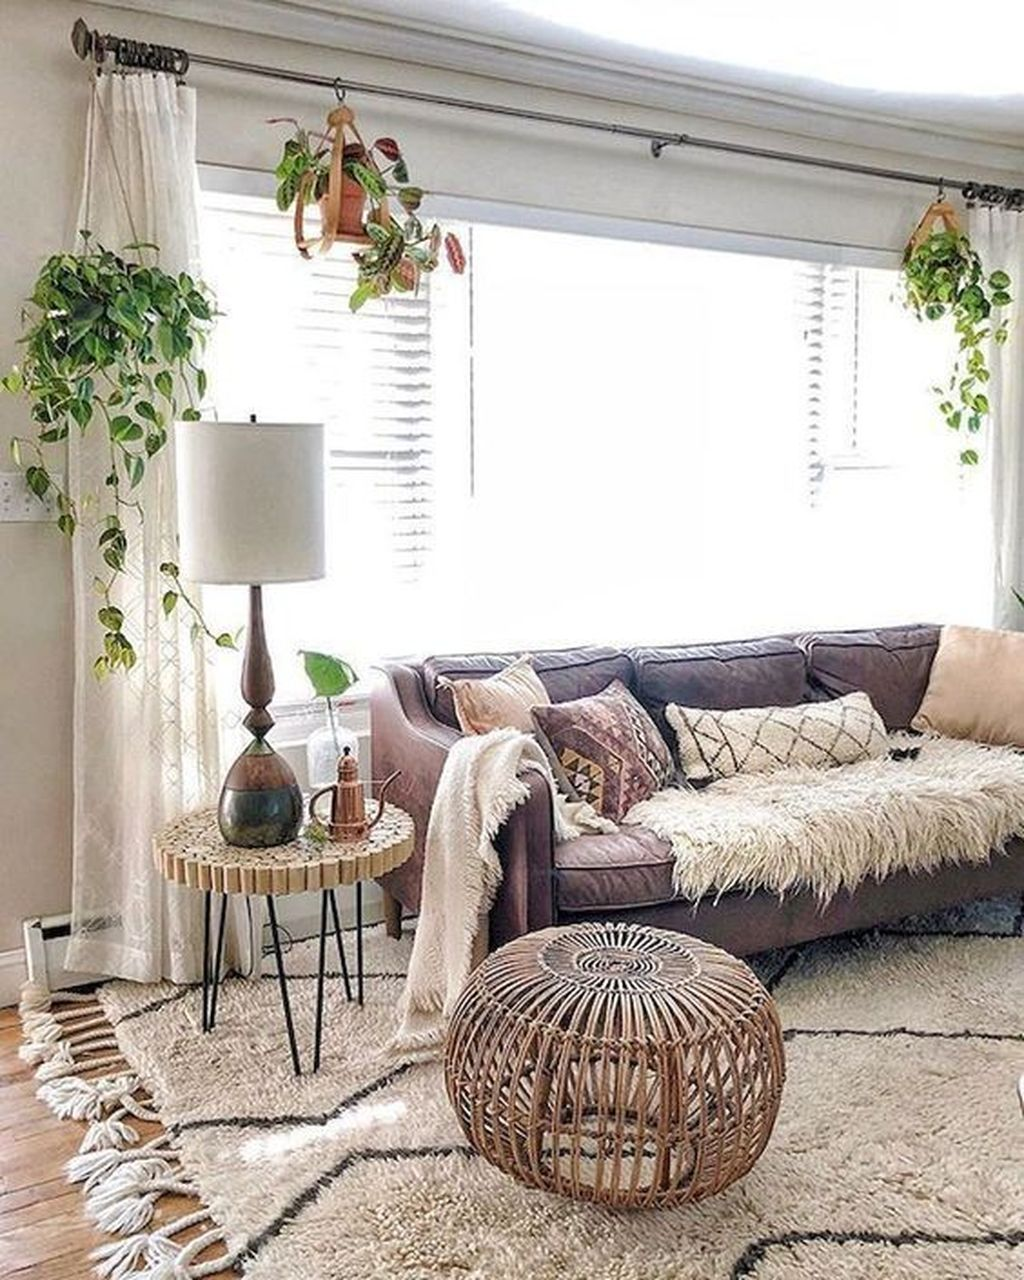 The Best Rustic Bohemian Living Room Decor Ideas 07